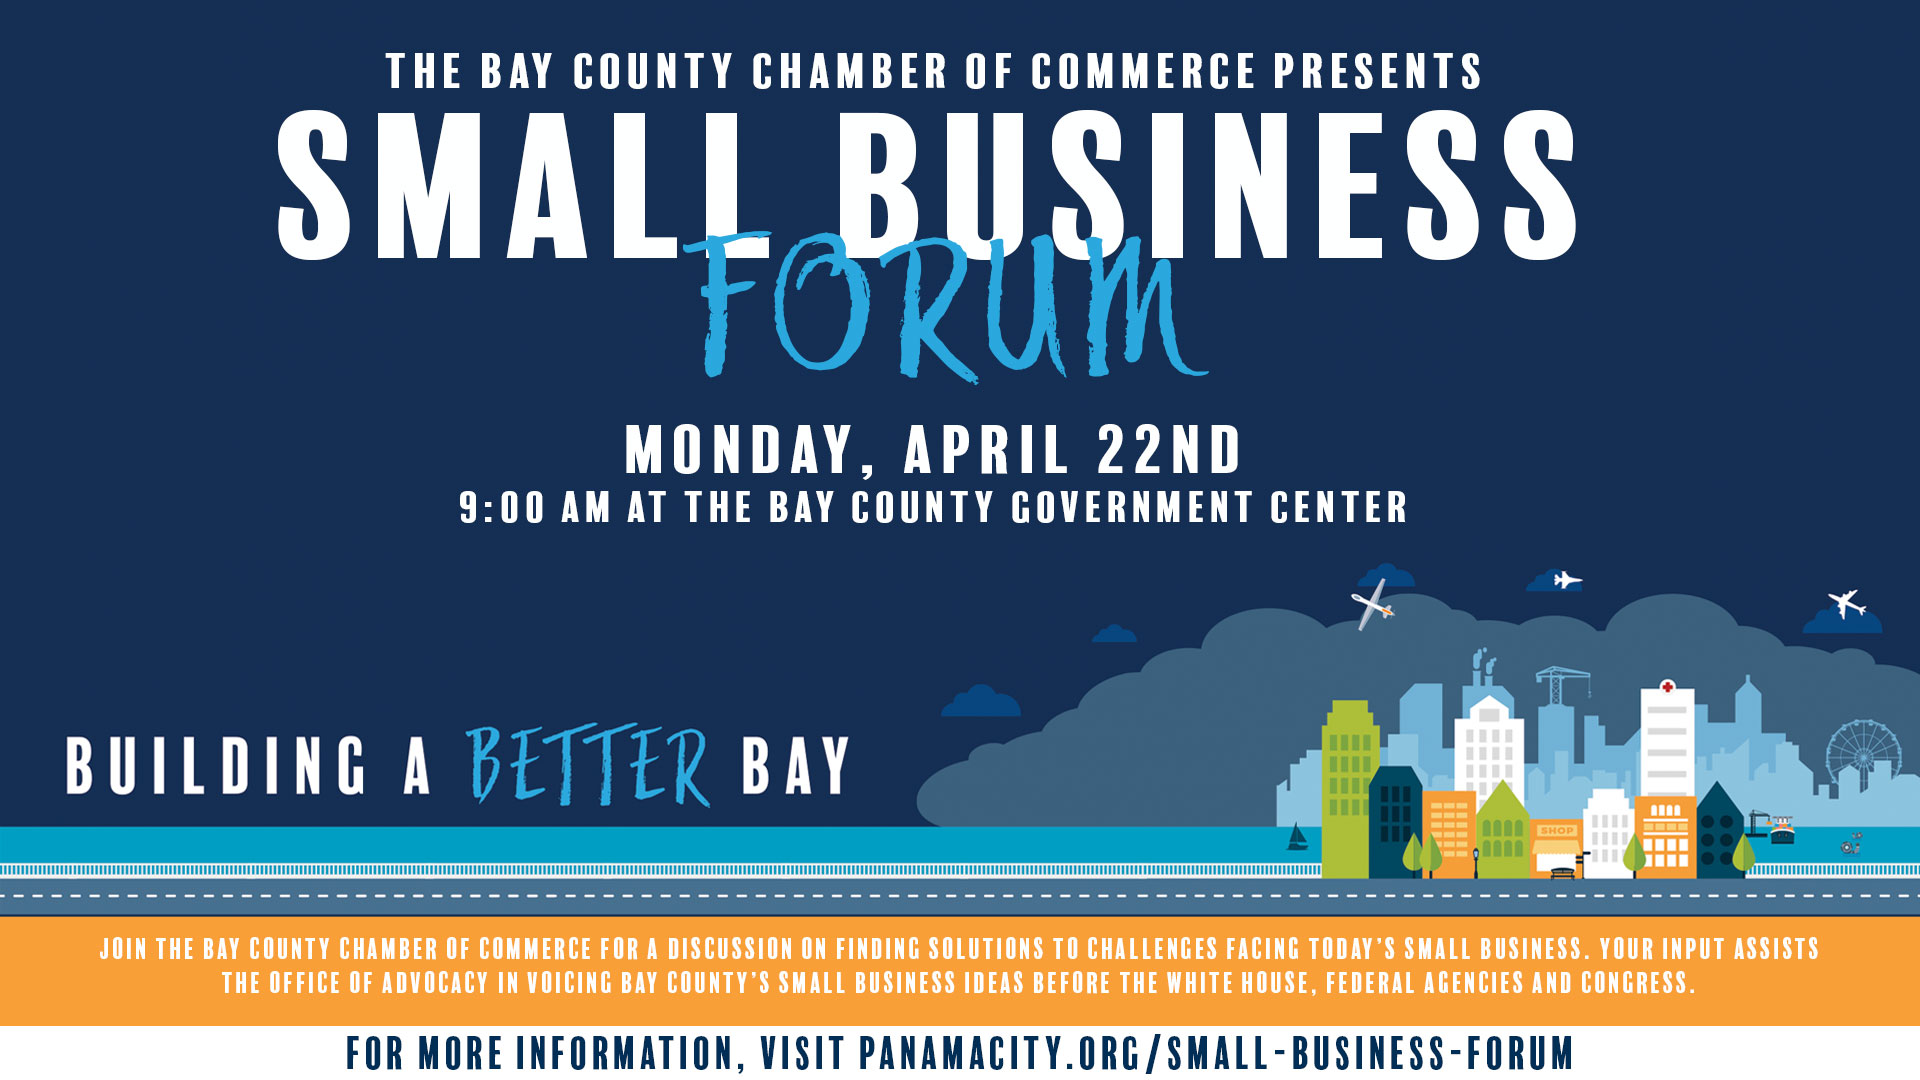 Small Business Forum - Bay County Chamber of Commerce